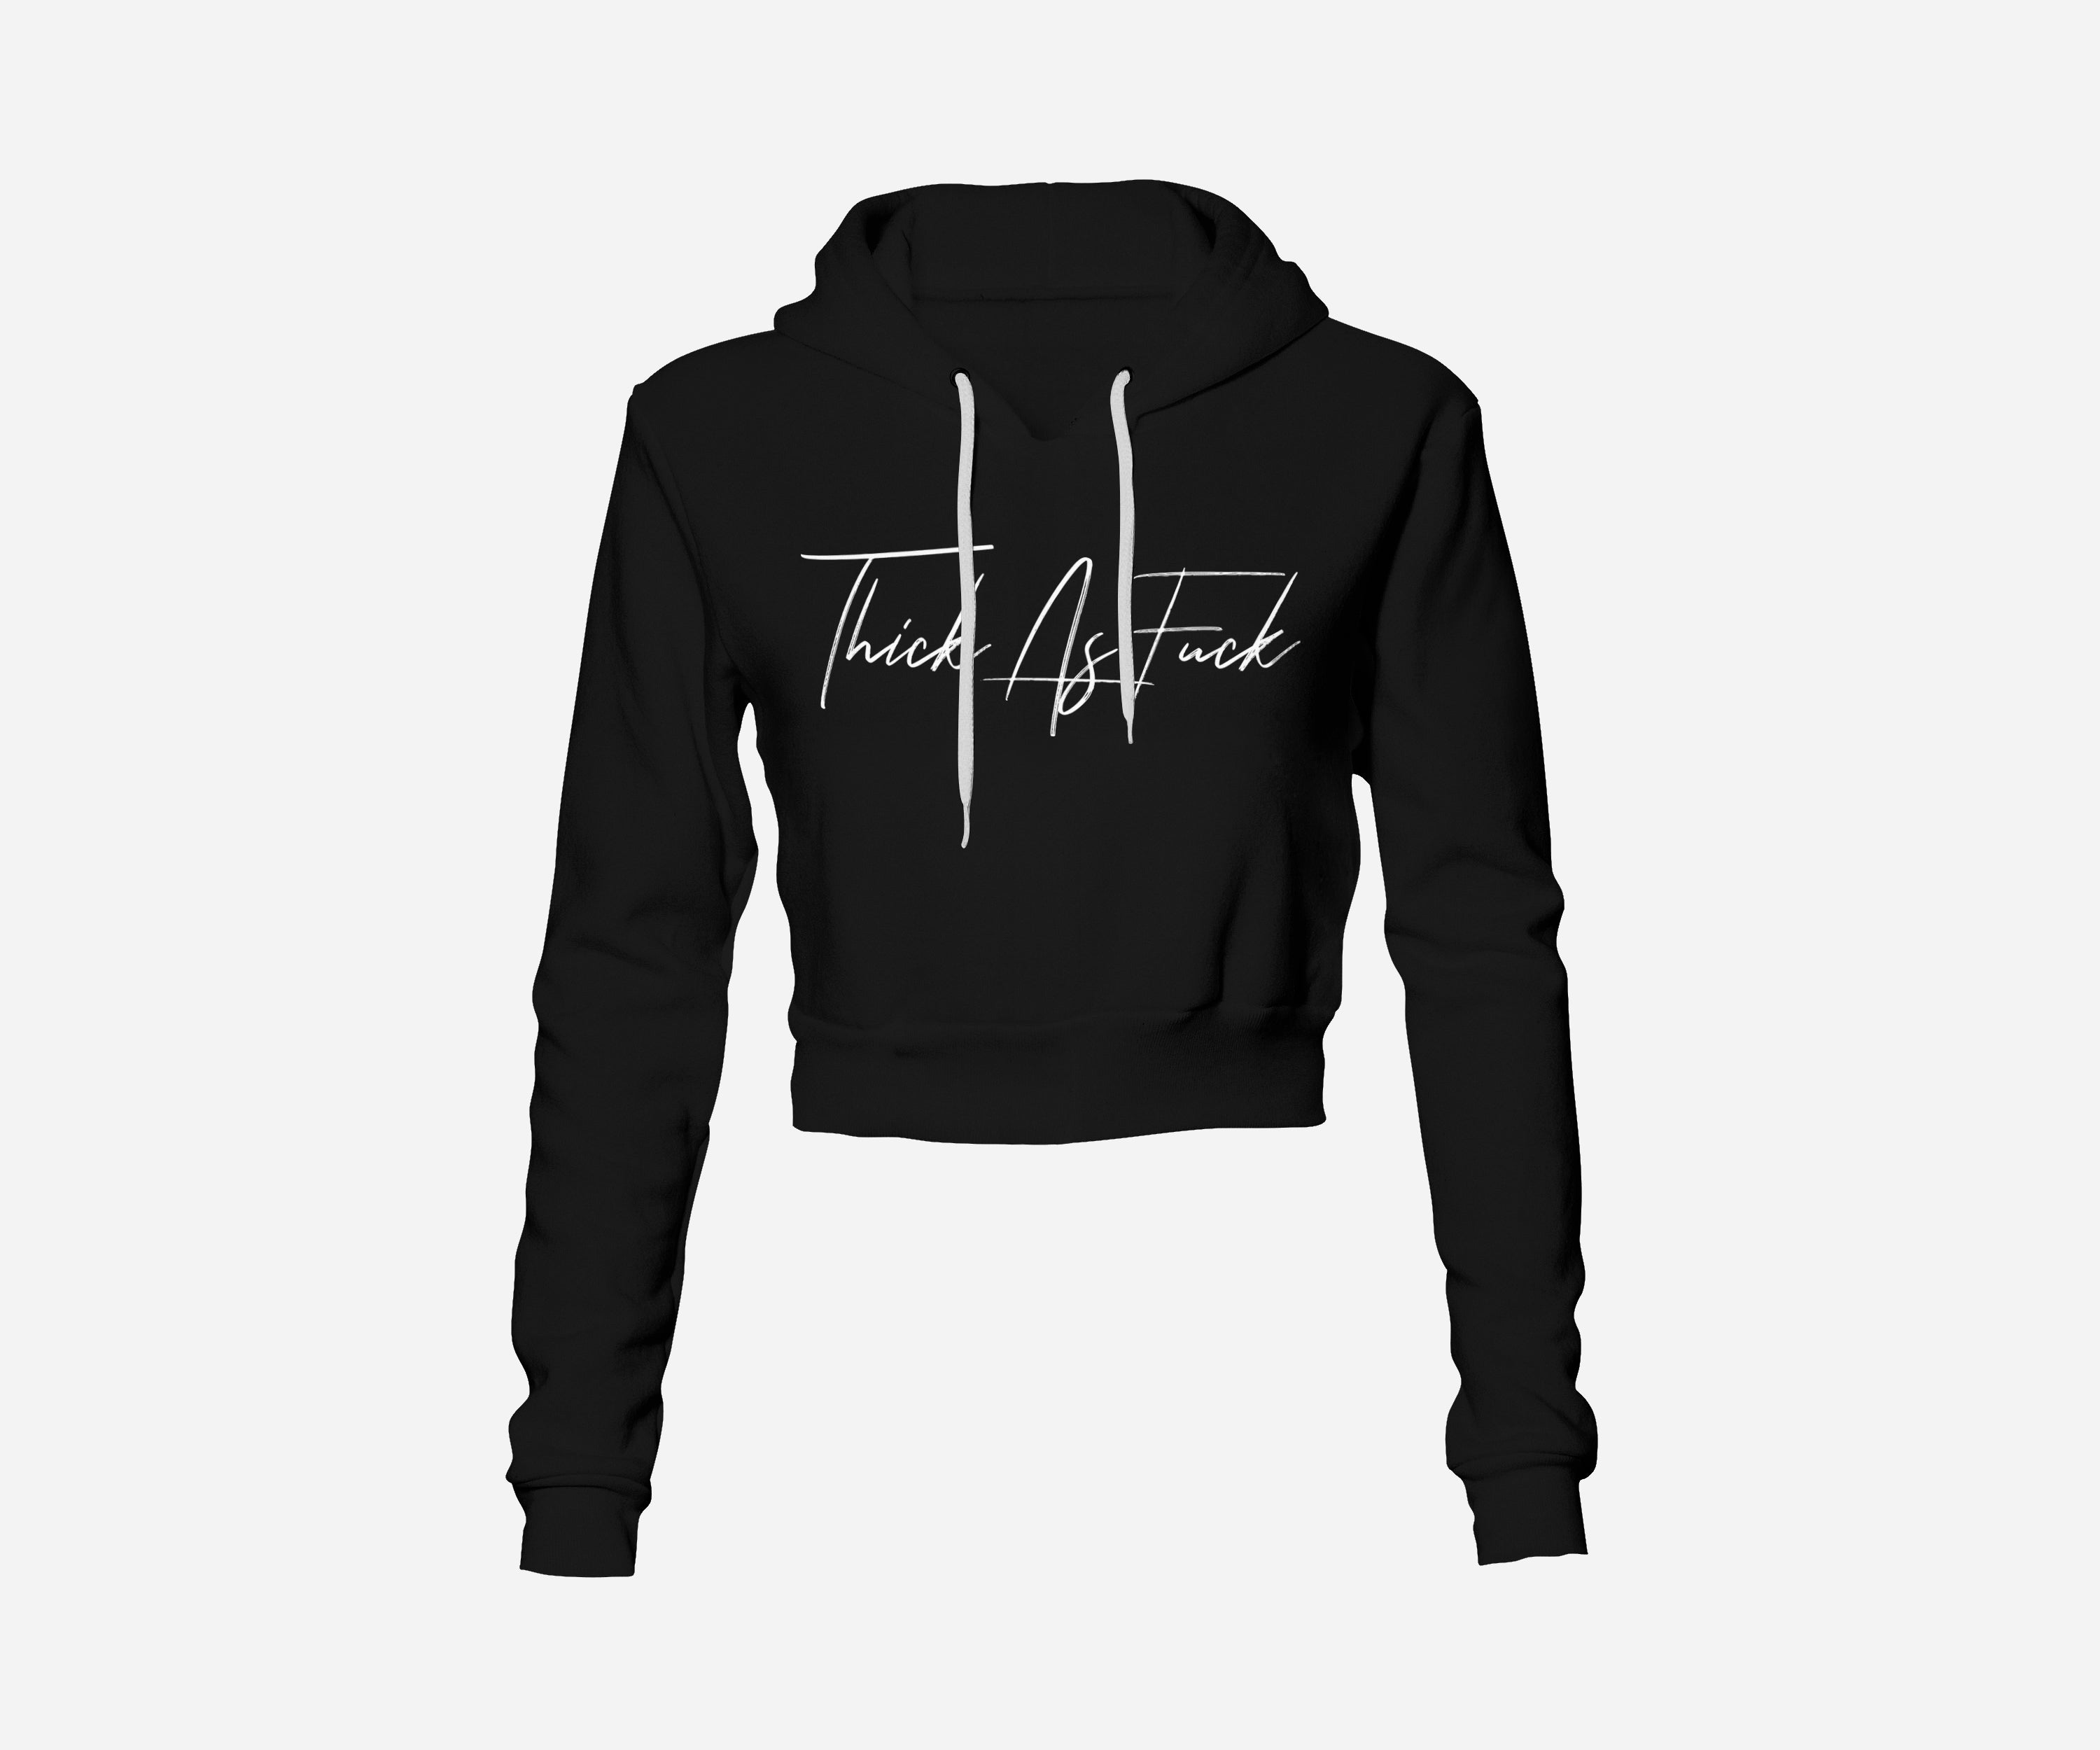 Thick AF Cropped unisex Hoodie